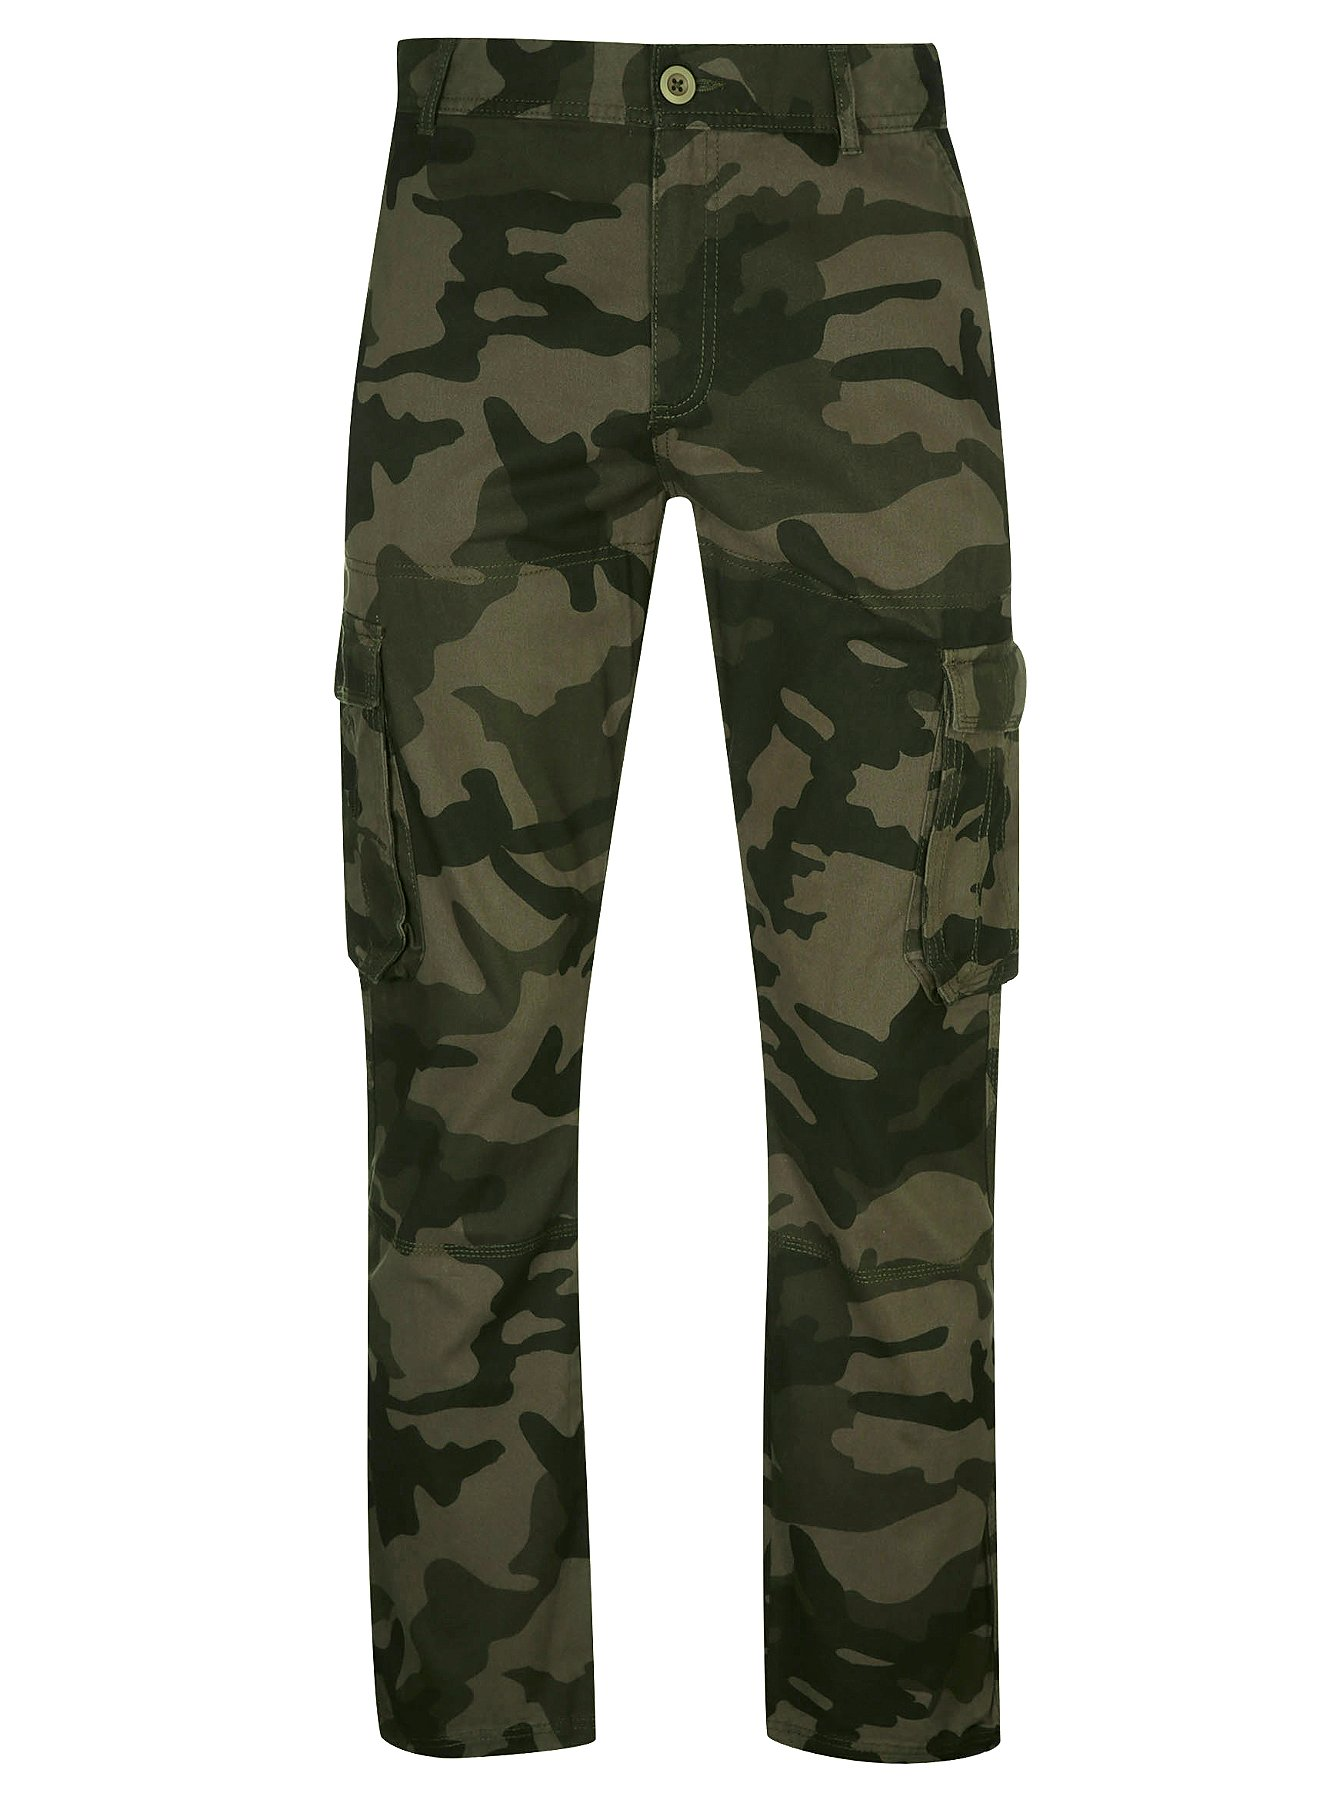 Khaki Camouflage Cargo Trousers | Men | George